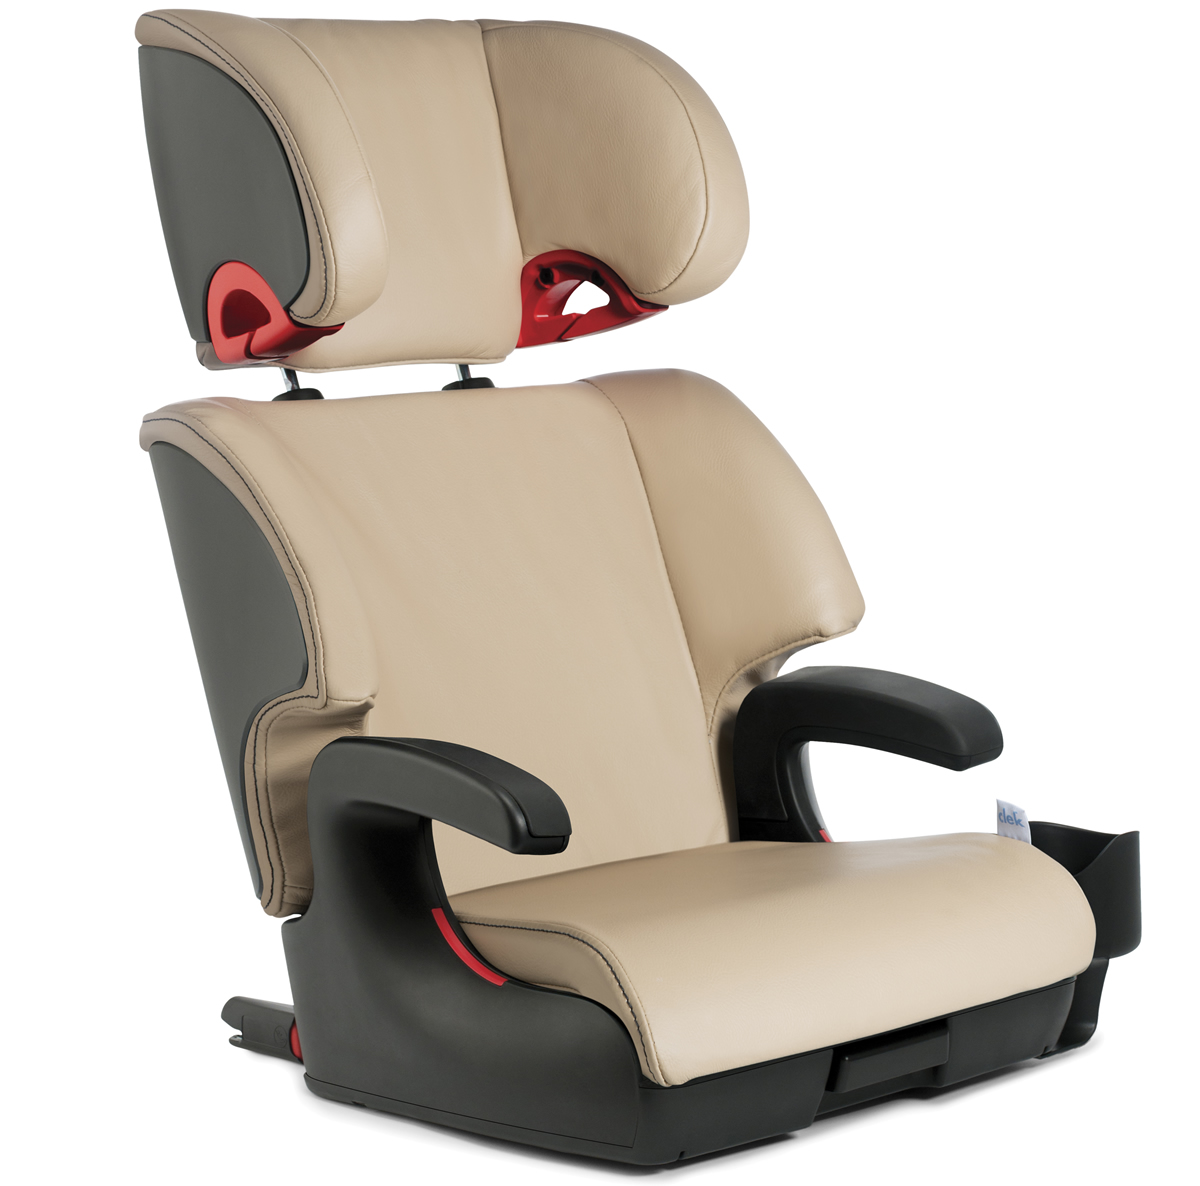 Clek Oobr Booster Seat - Paige